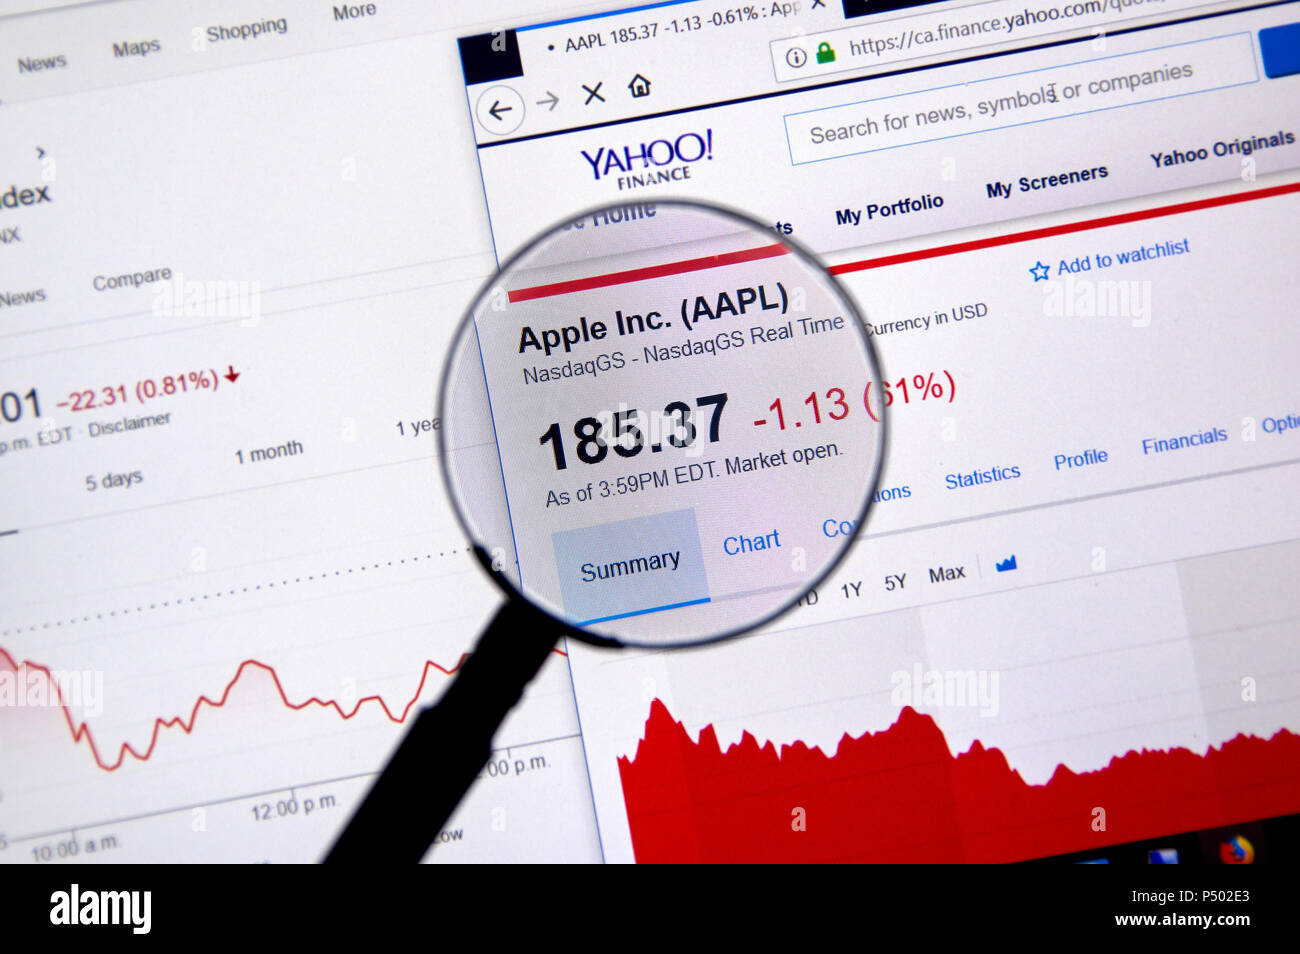 MONTREAL, CANADA - JUNE 22, 2018: Apple Inc AAPL ticker with charts under magnifying glass on Yahoo Finance. - Stock Image